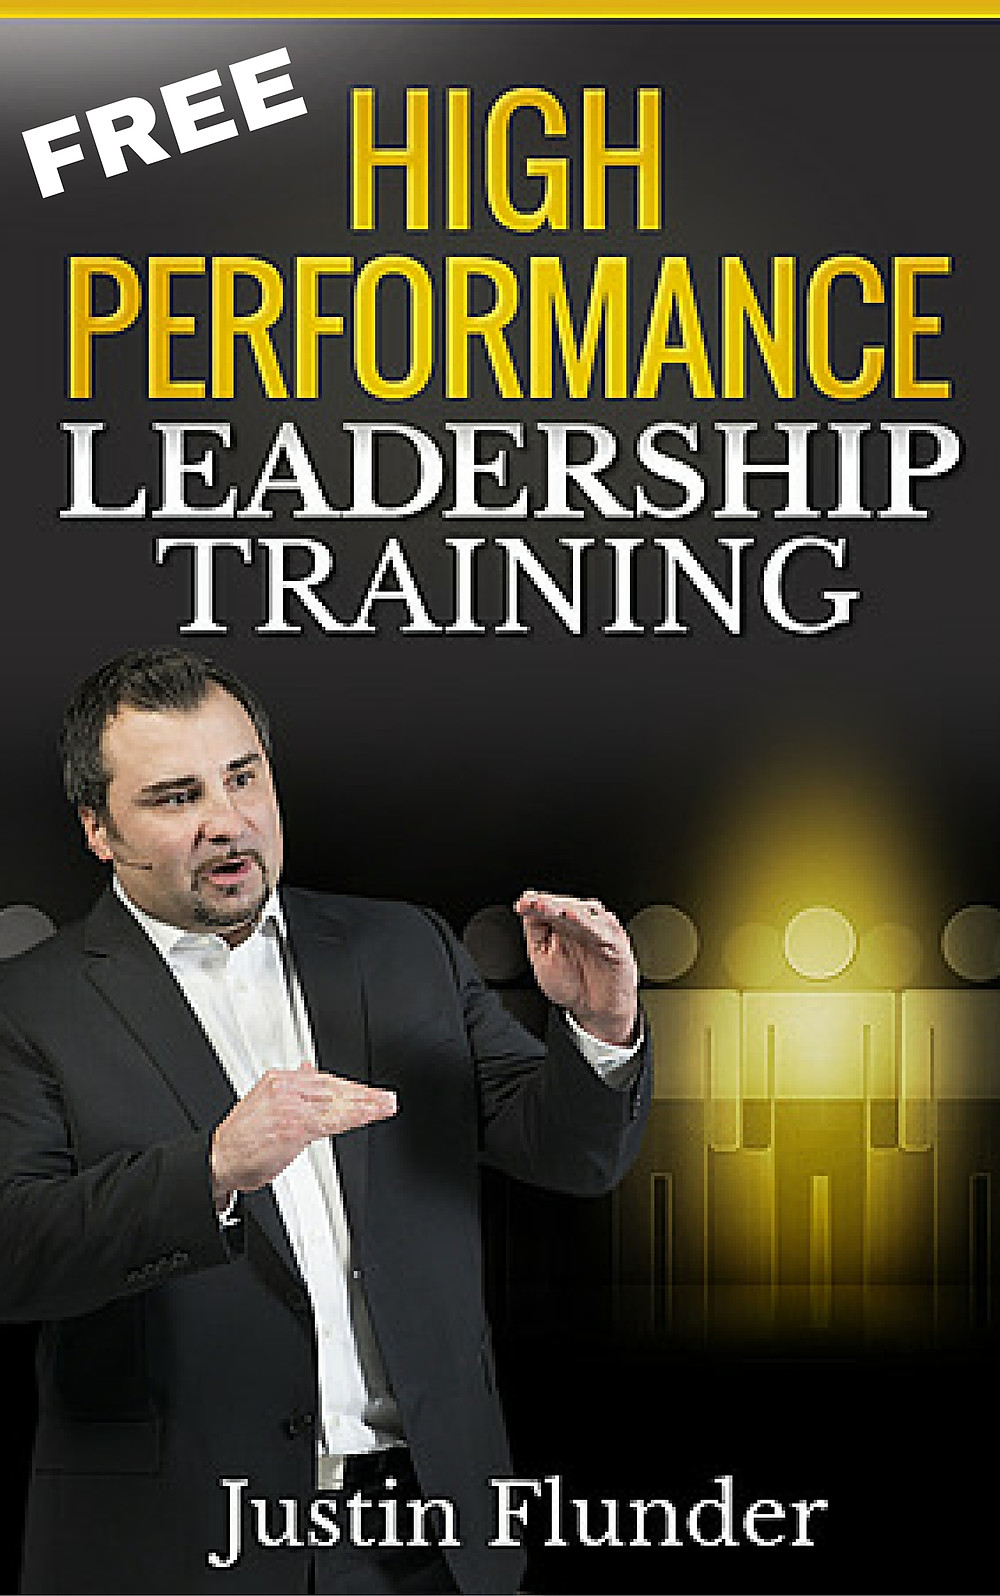 Click here to get instant access to FREE High Performance Leadership Video Training